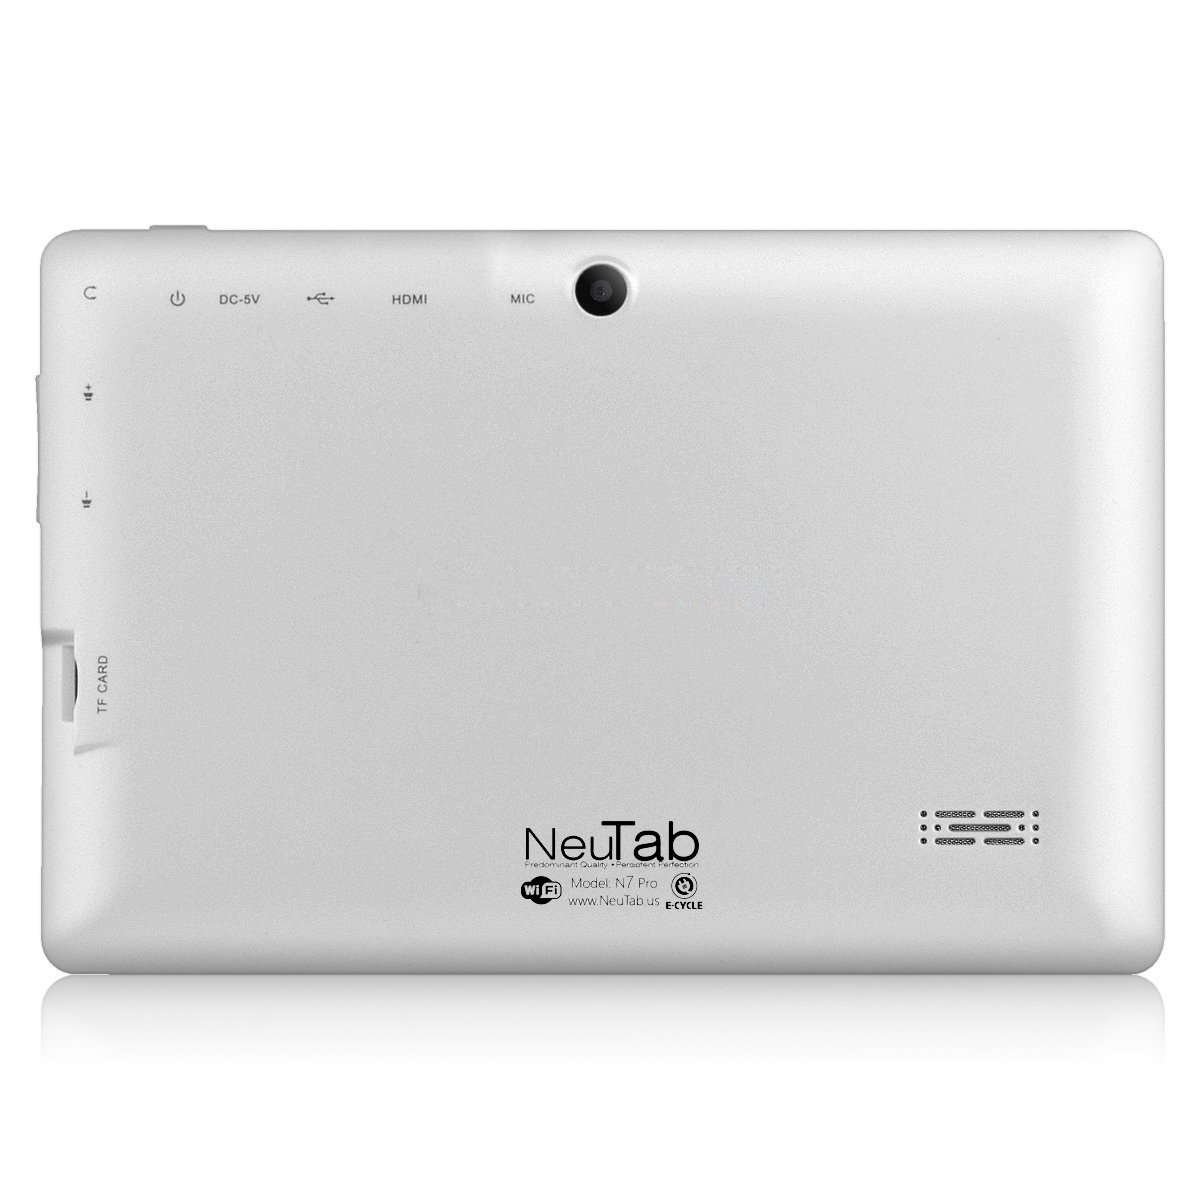 e7905eb4e93 NeuTab N7 Pro 7-inch Tablet PC Quad Core Google Android 4.4 KitKat, HD  1024×600 Display, Bluetooth, Dual Camera, Google Play Pre-loaded, 3D-Game  Supported ...